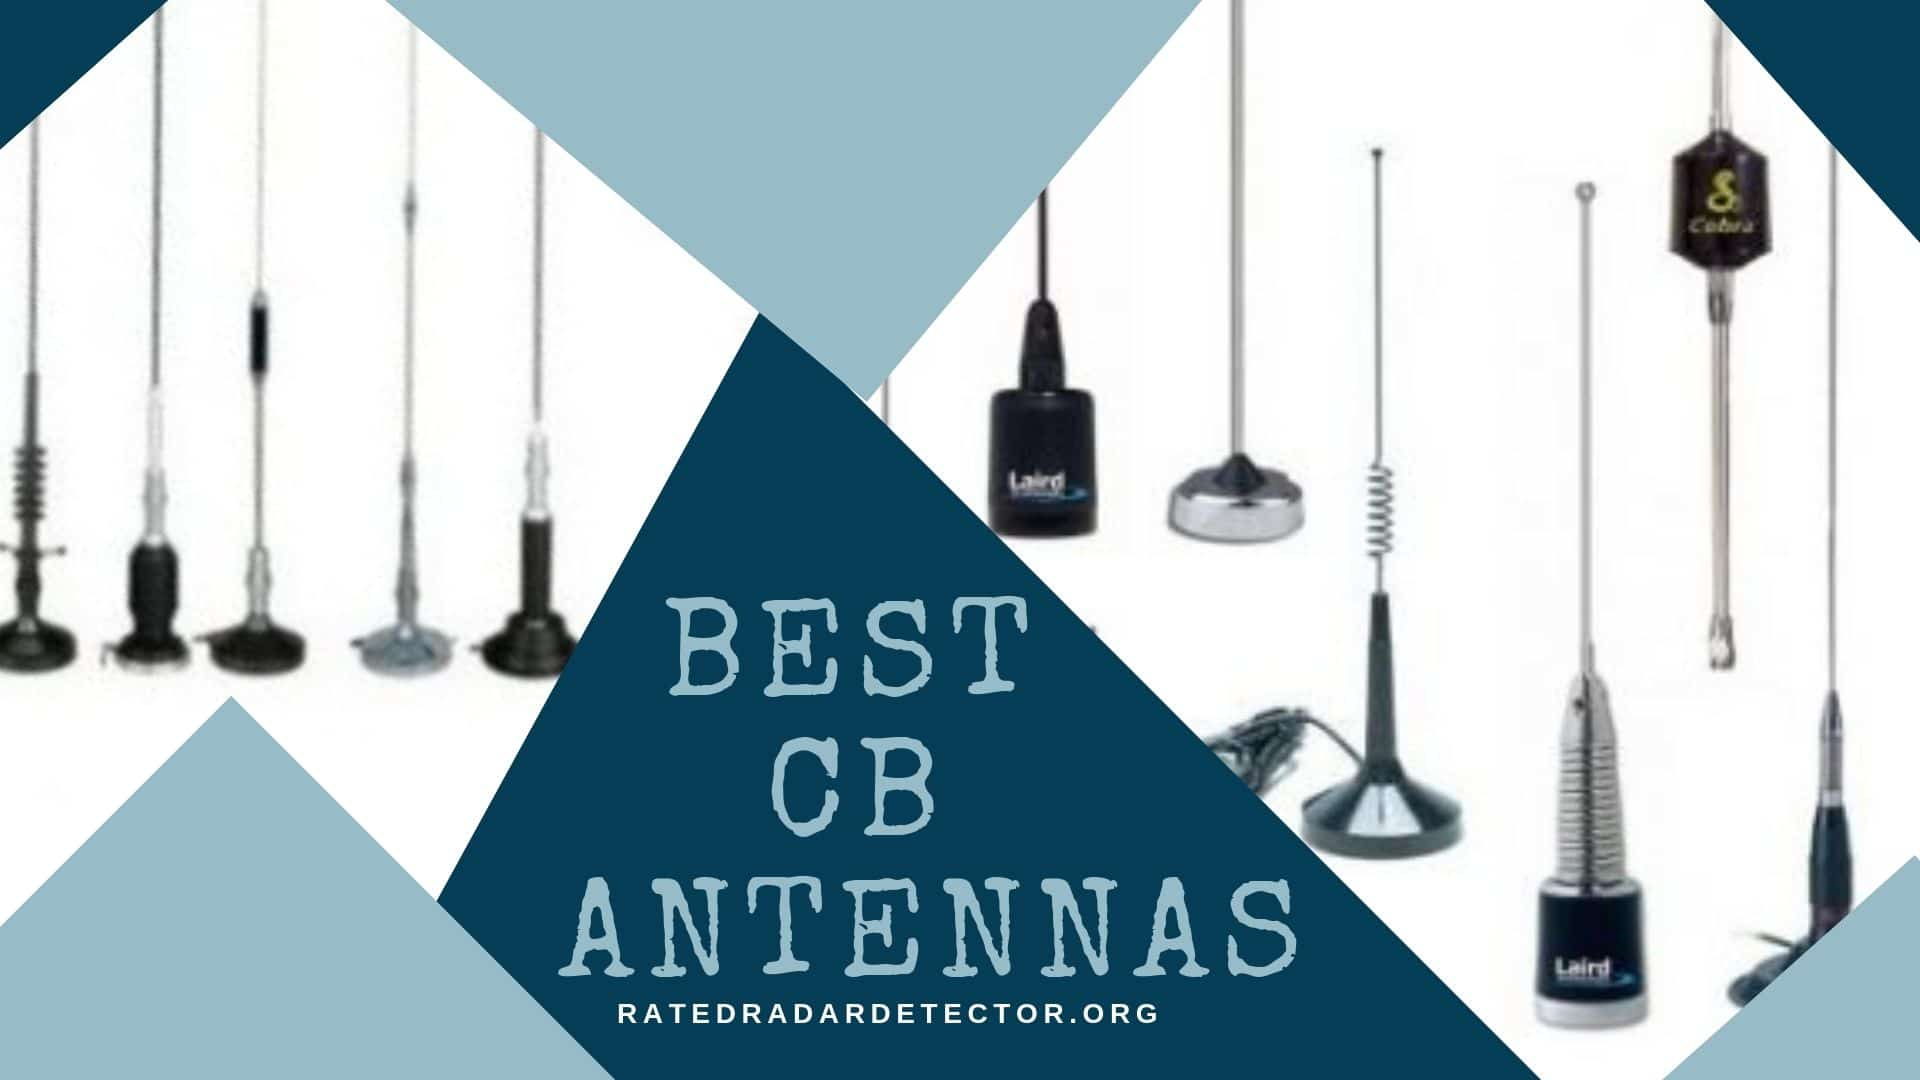 Best Cb Antennas